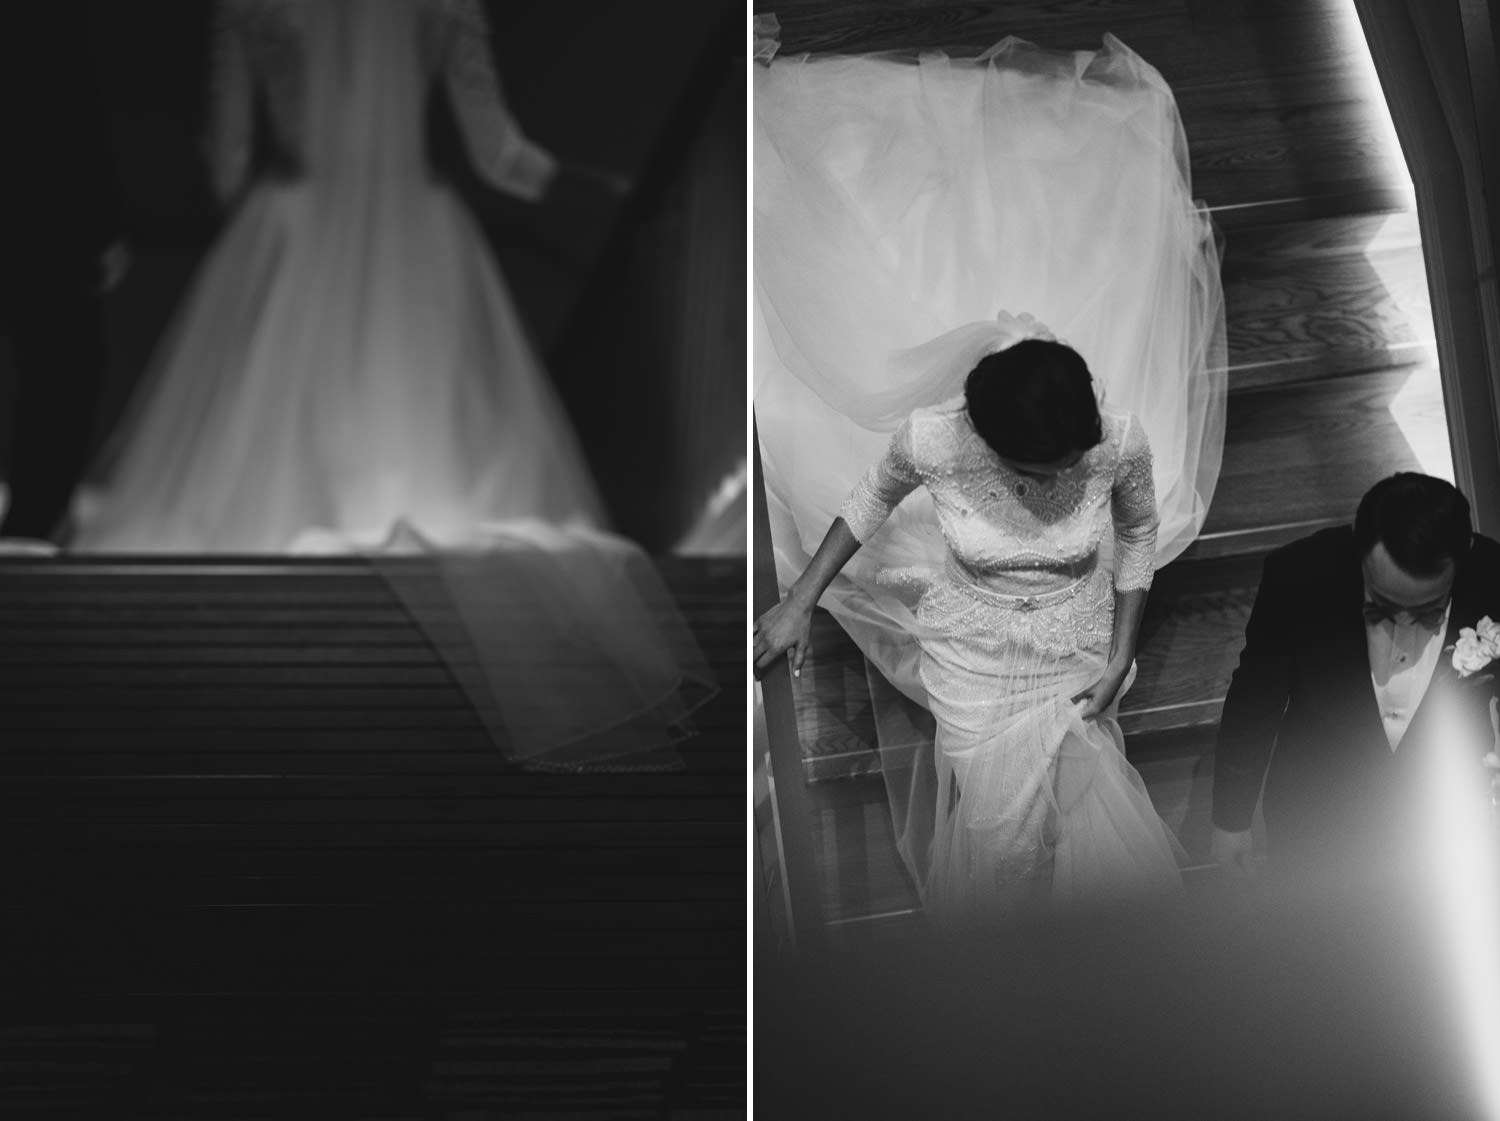 Bride and groom walk down the stairs after the wedding ceremony at Hotel Gray in Chicago